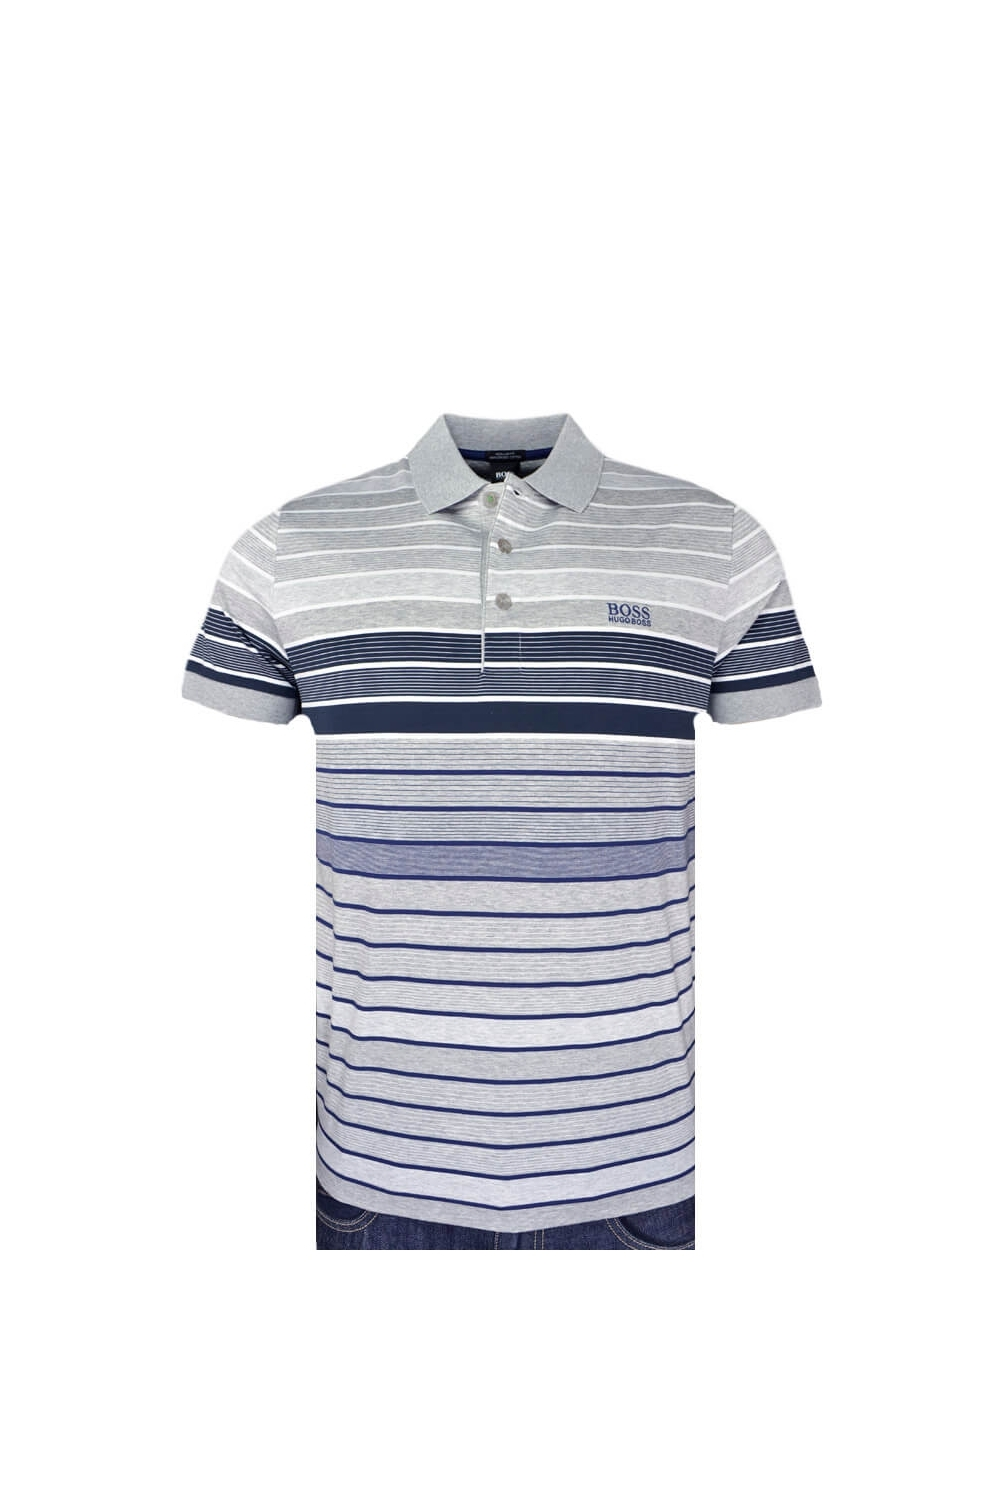 b35316324 BOSS Athleisure BOSS Paddy 3 Polo Shirt Grey Multi Stripe - Clothing ...